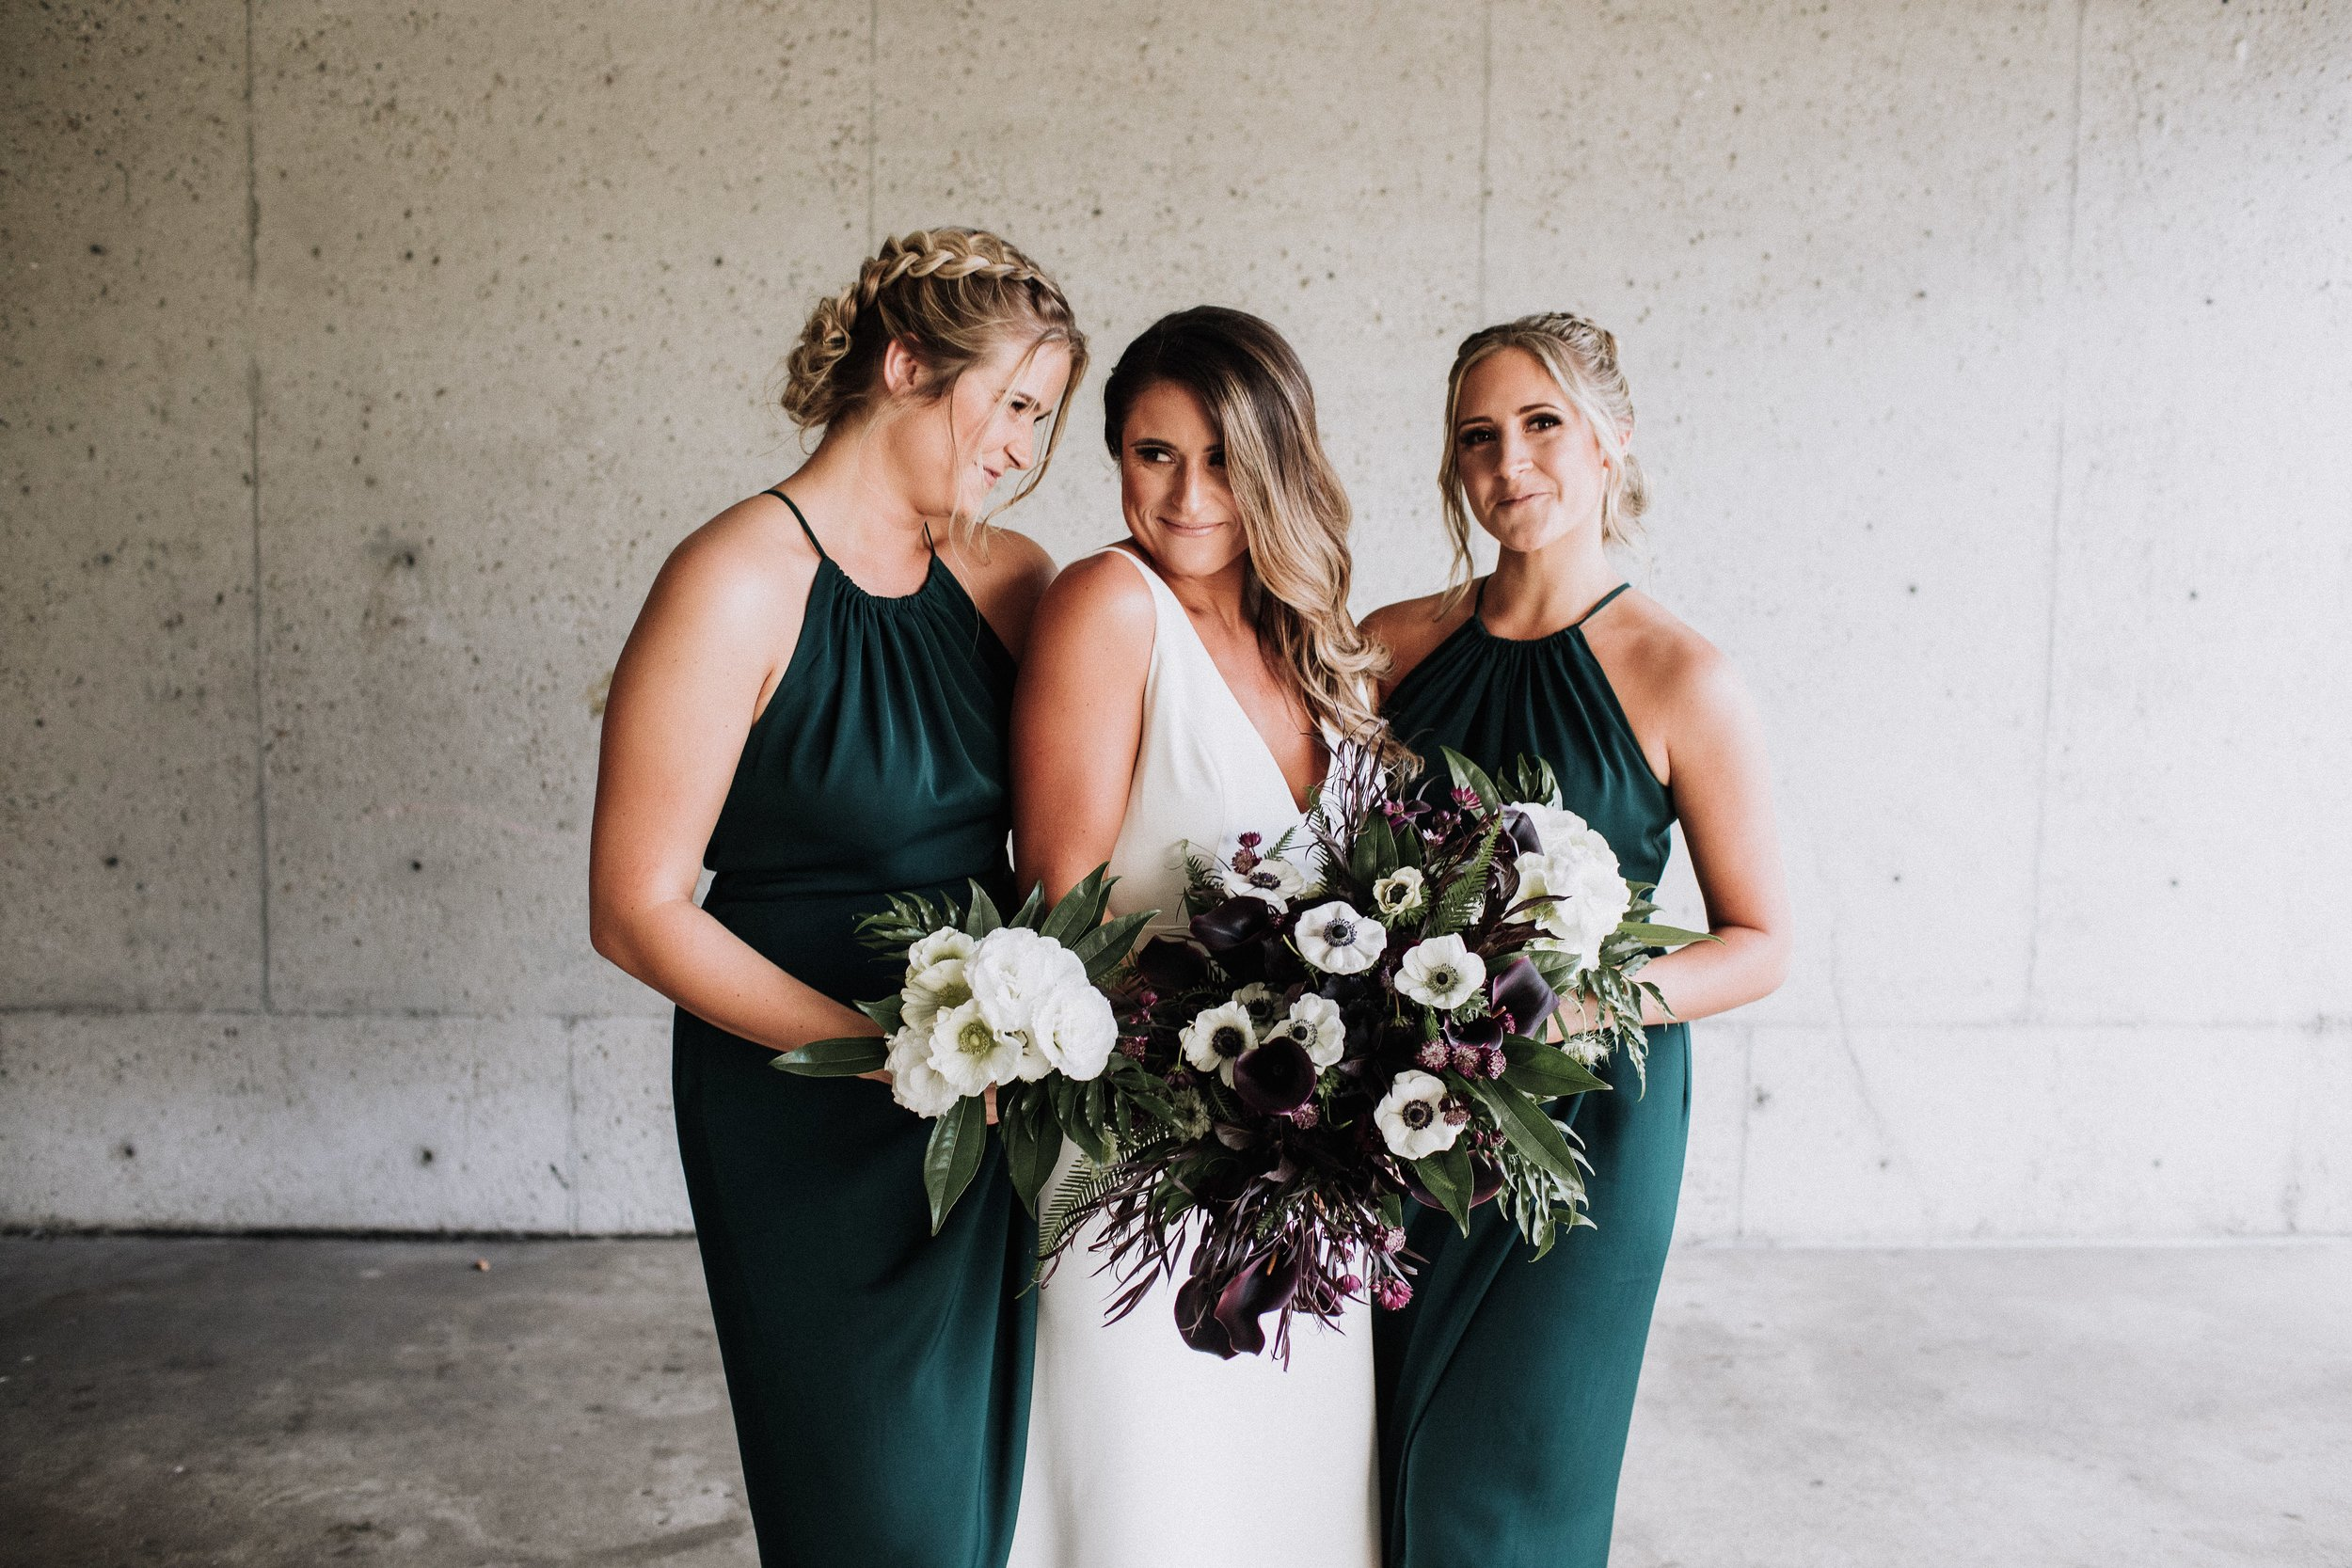 Bride with Bridesmaids Sisters Dark Green Dresses Bouquets Oakland Museum of California Katie Laines design + coordination